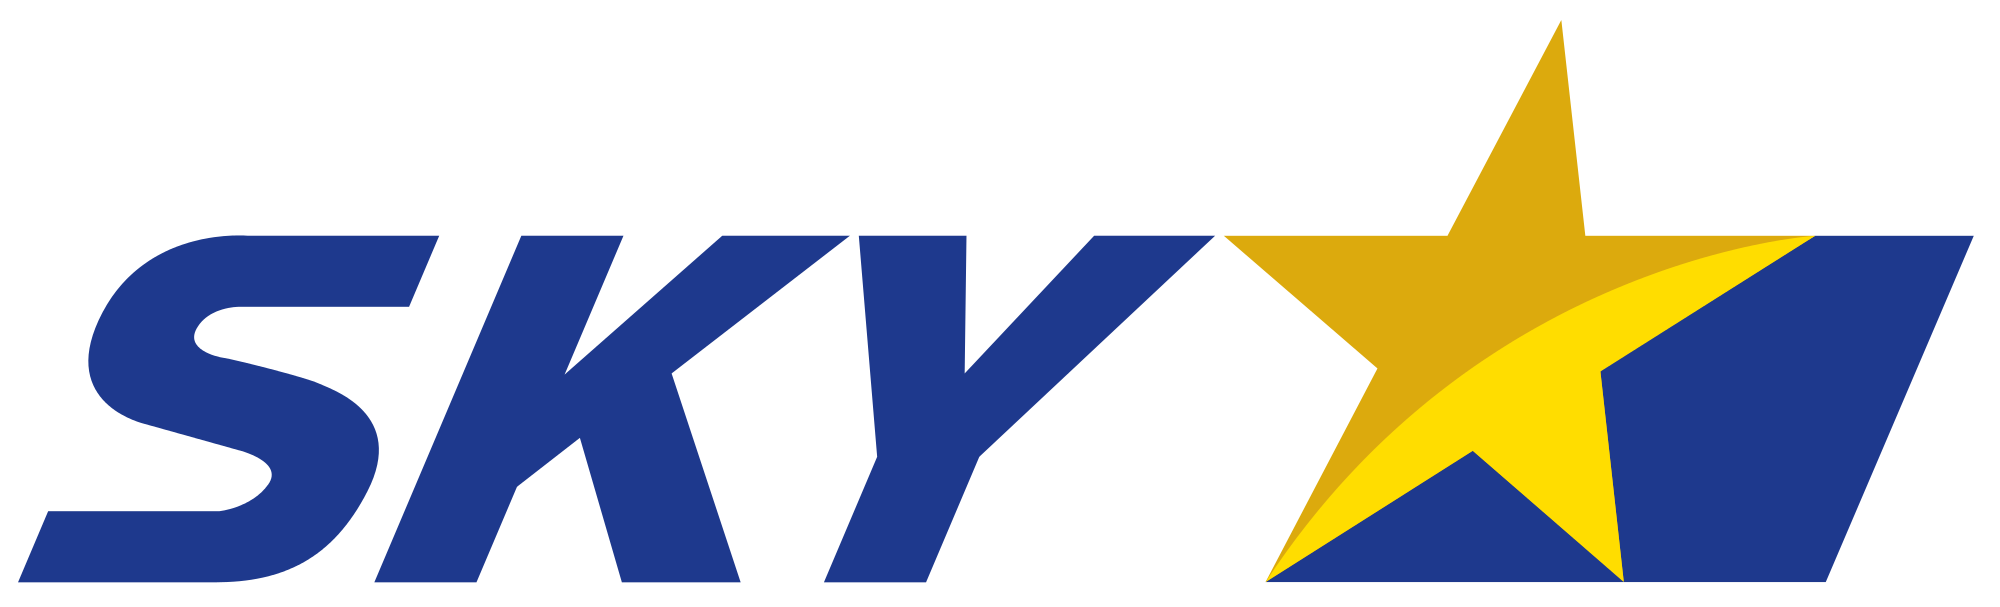 Skymark Airlines Inc.